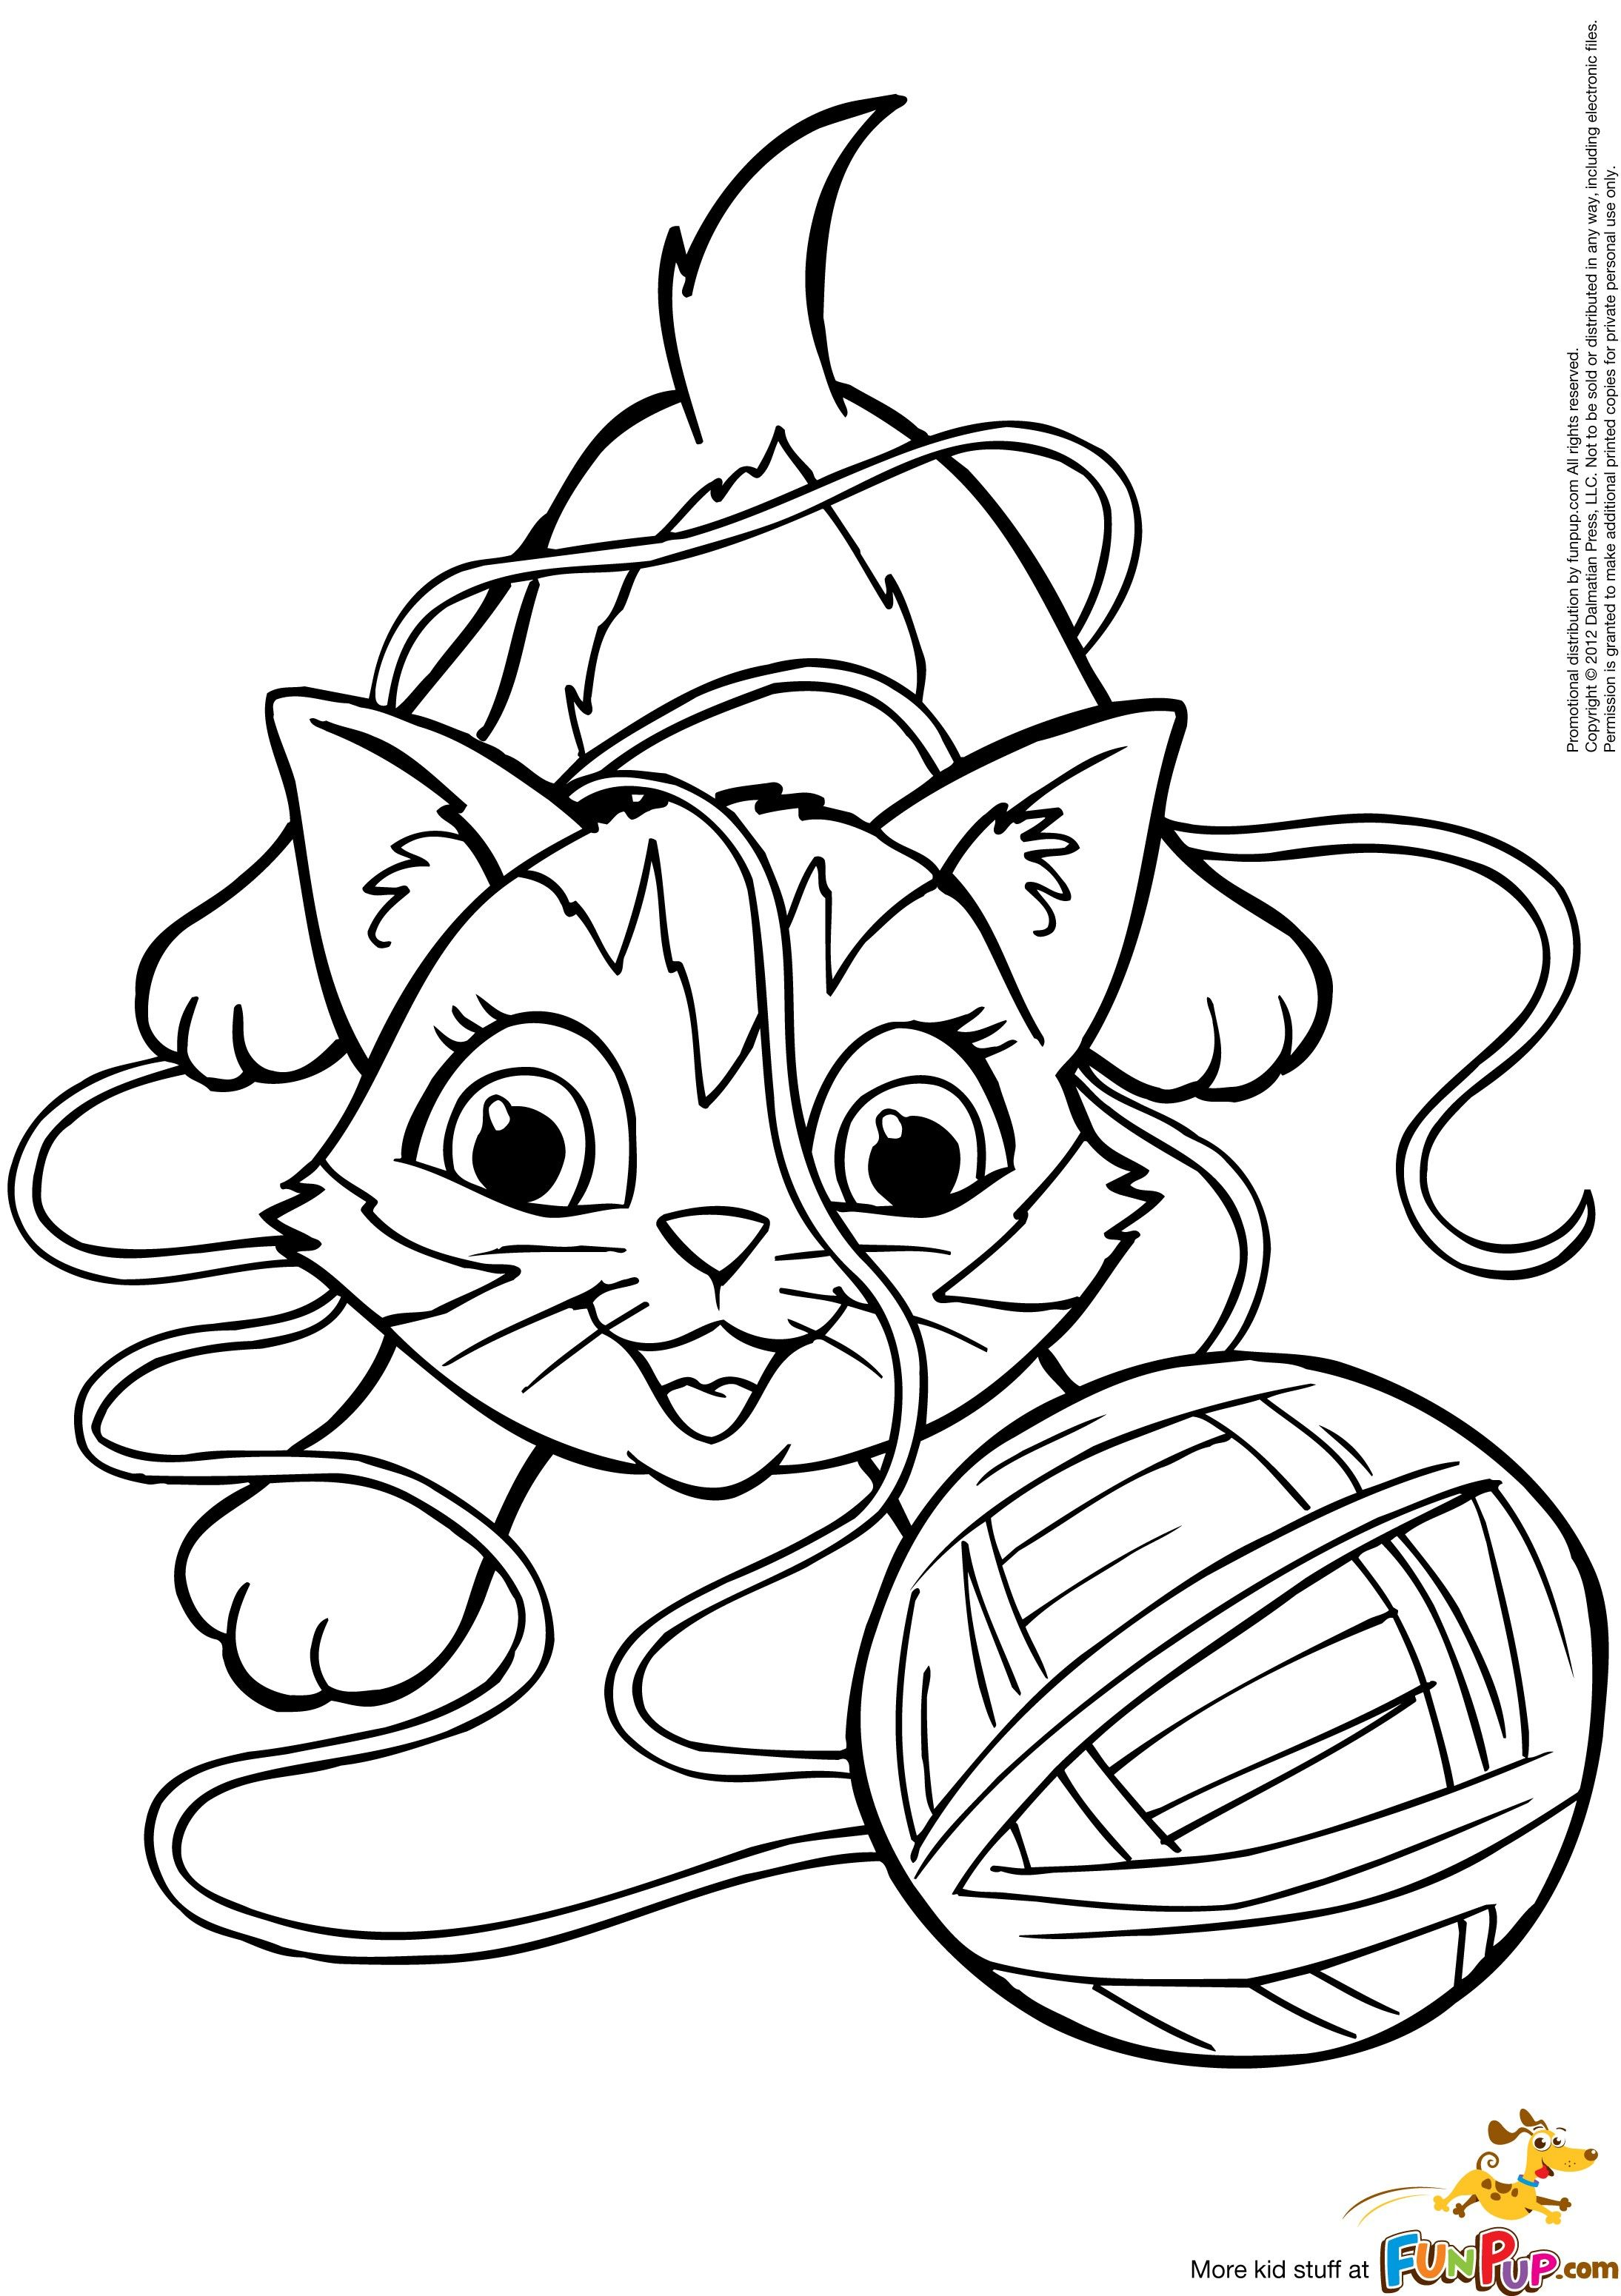 kitten coloring pictures yarn coloring page at getcoloringscom free printable coloring pictures kitten